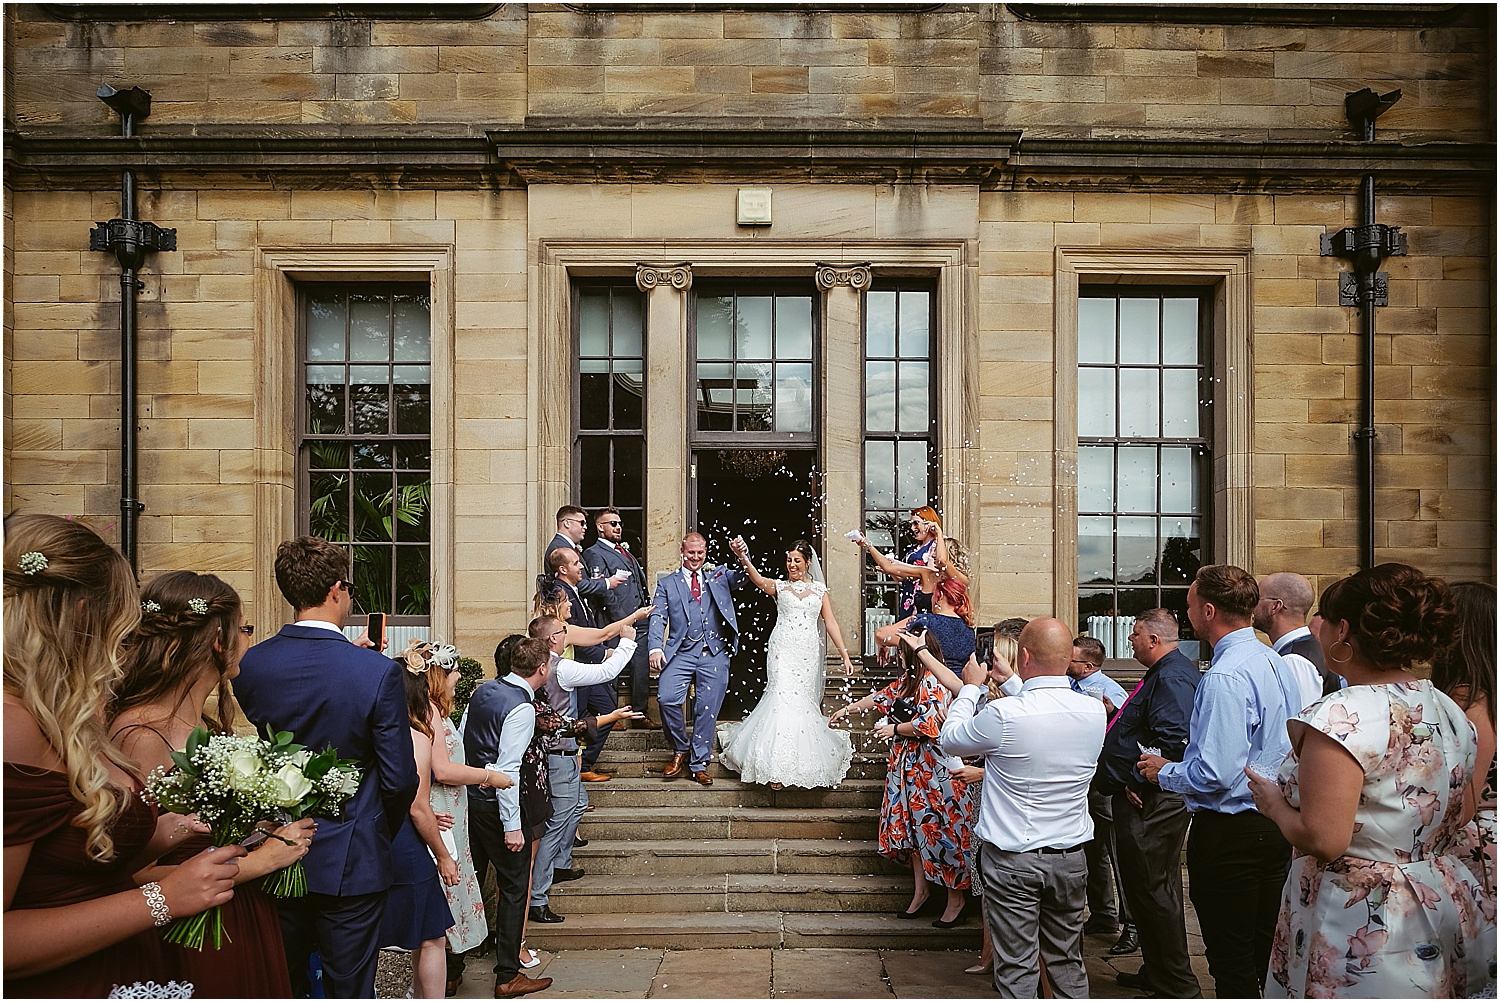 Wedding at Beamish Hall - wedding photography by www.2tonephotography.co.uk 160.jpg